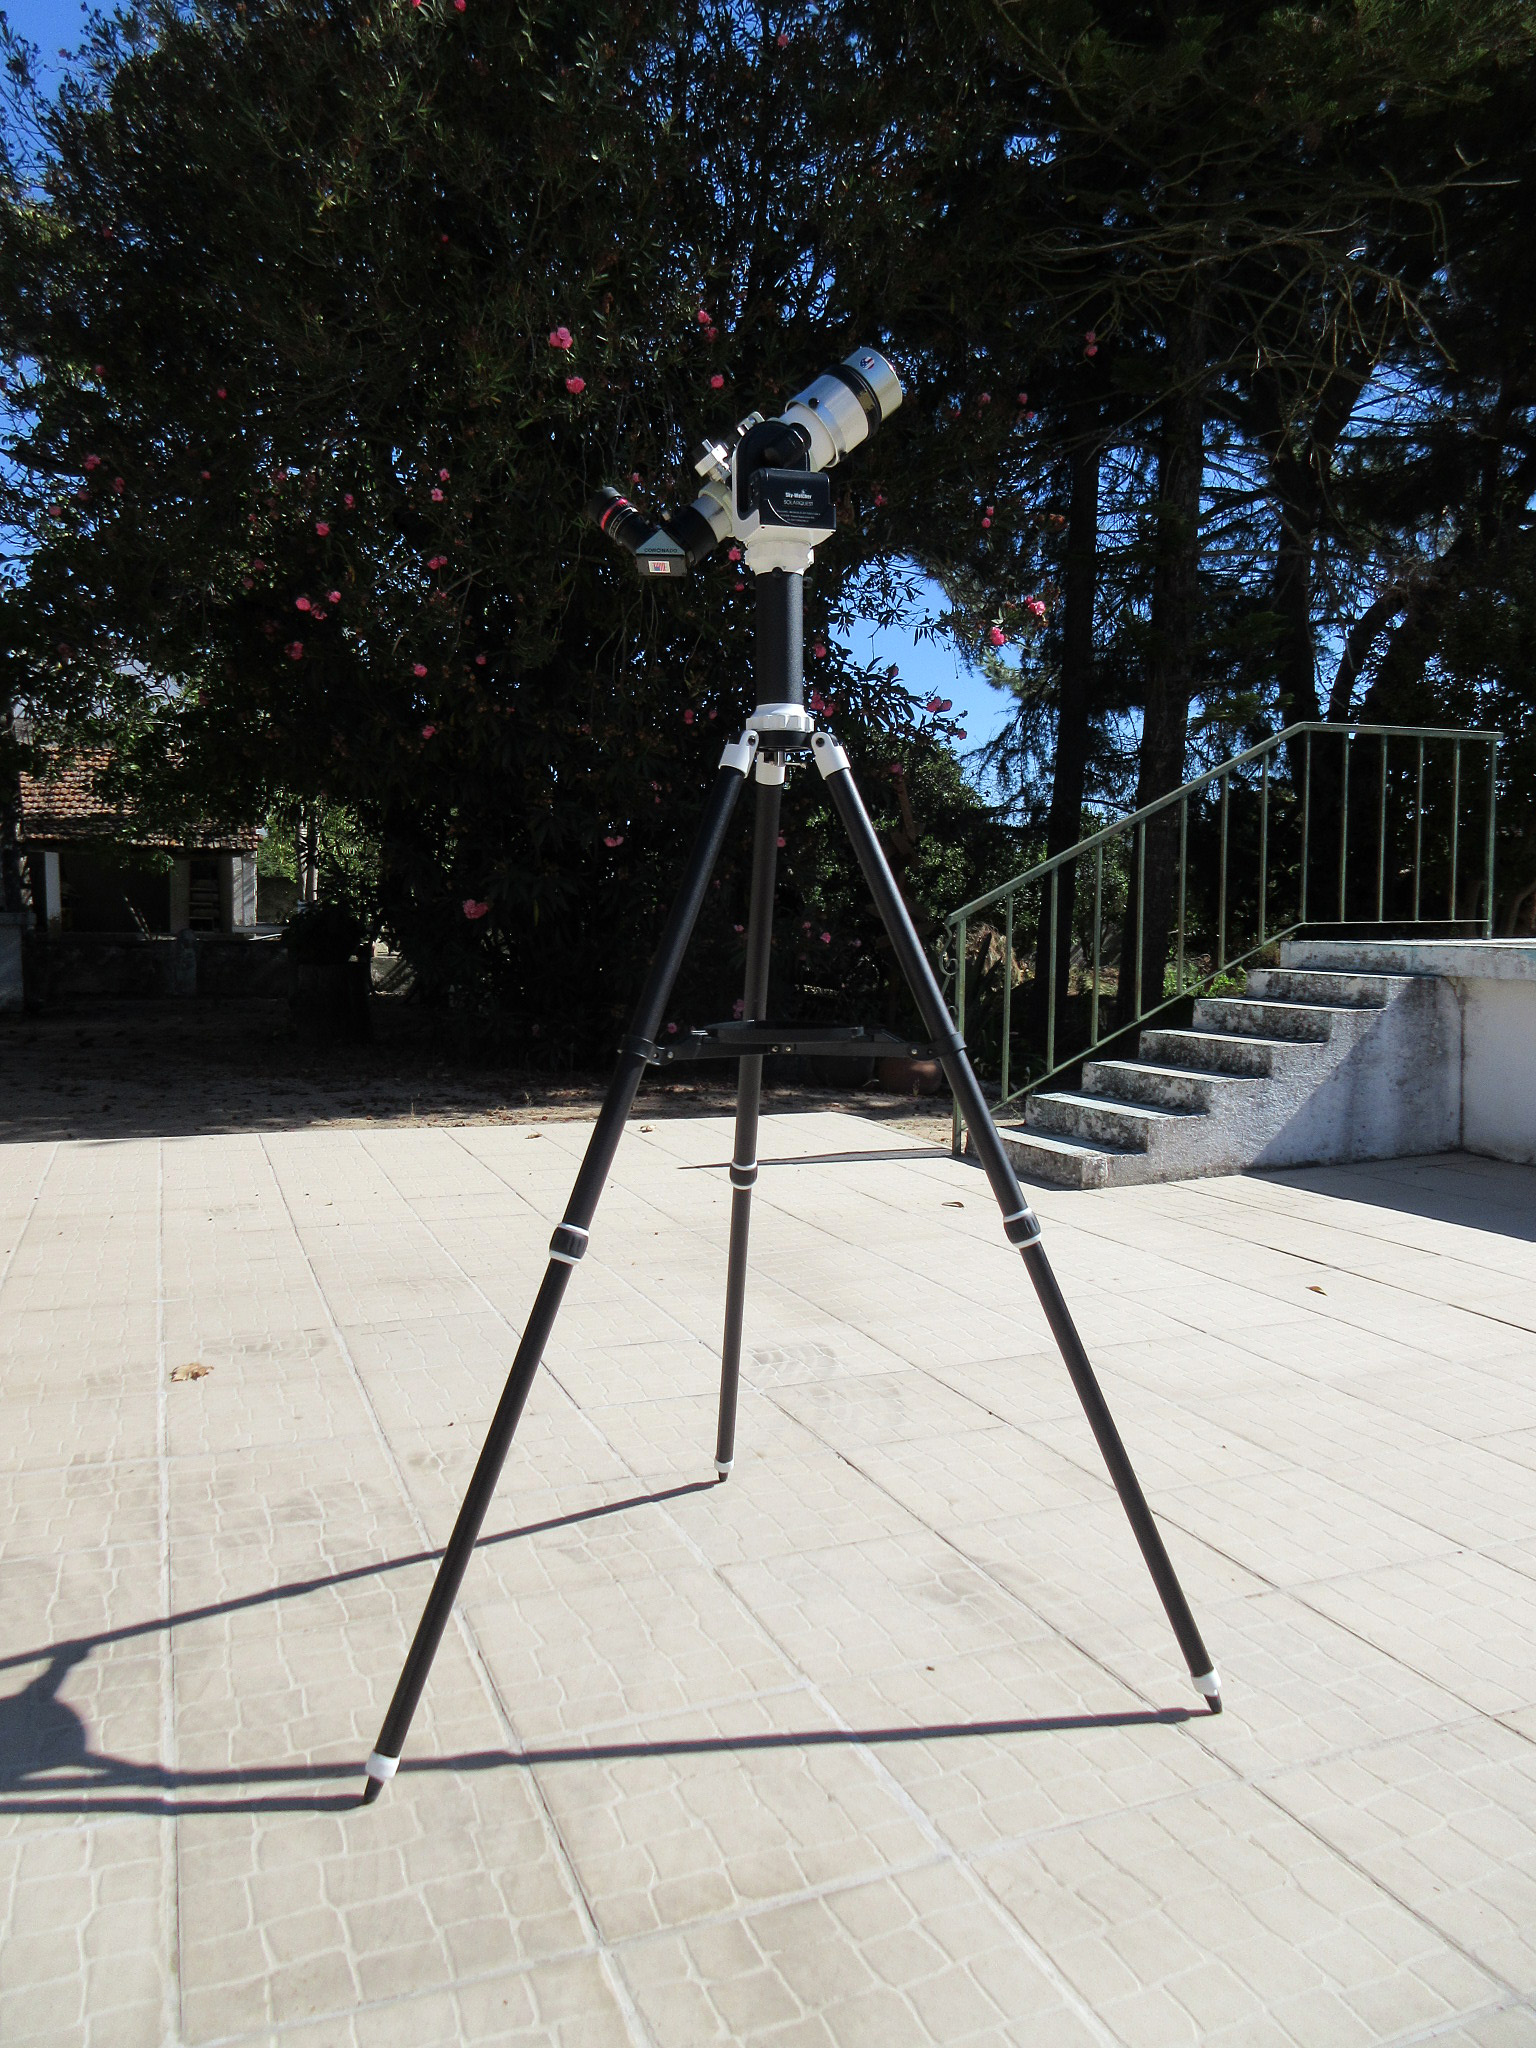 solarquest_mount_20181002-001.JPG